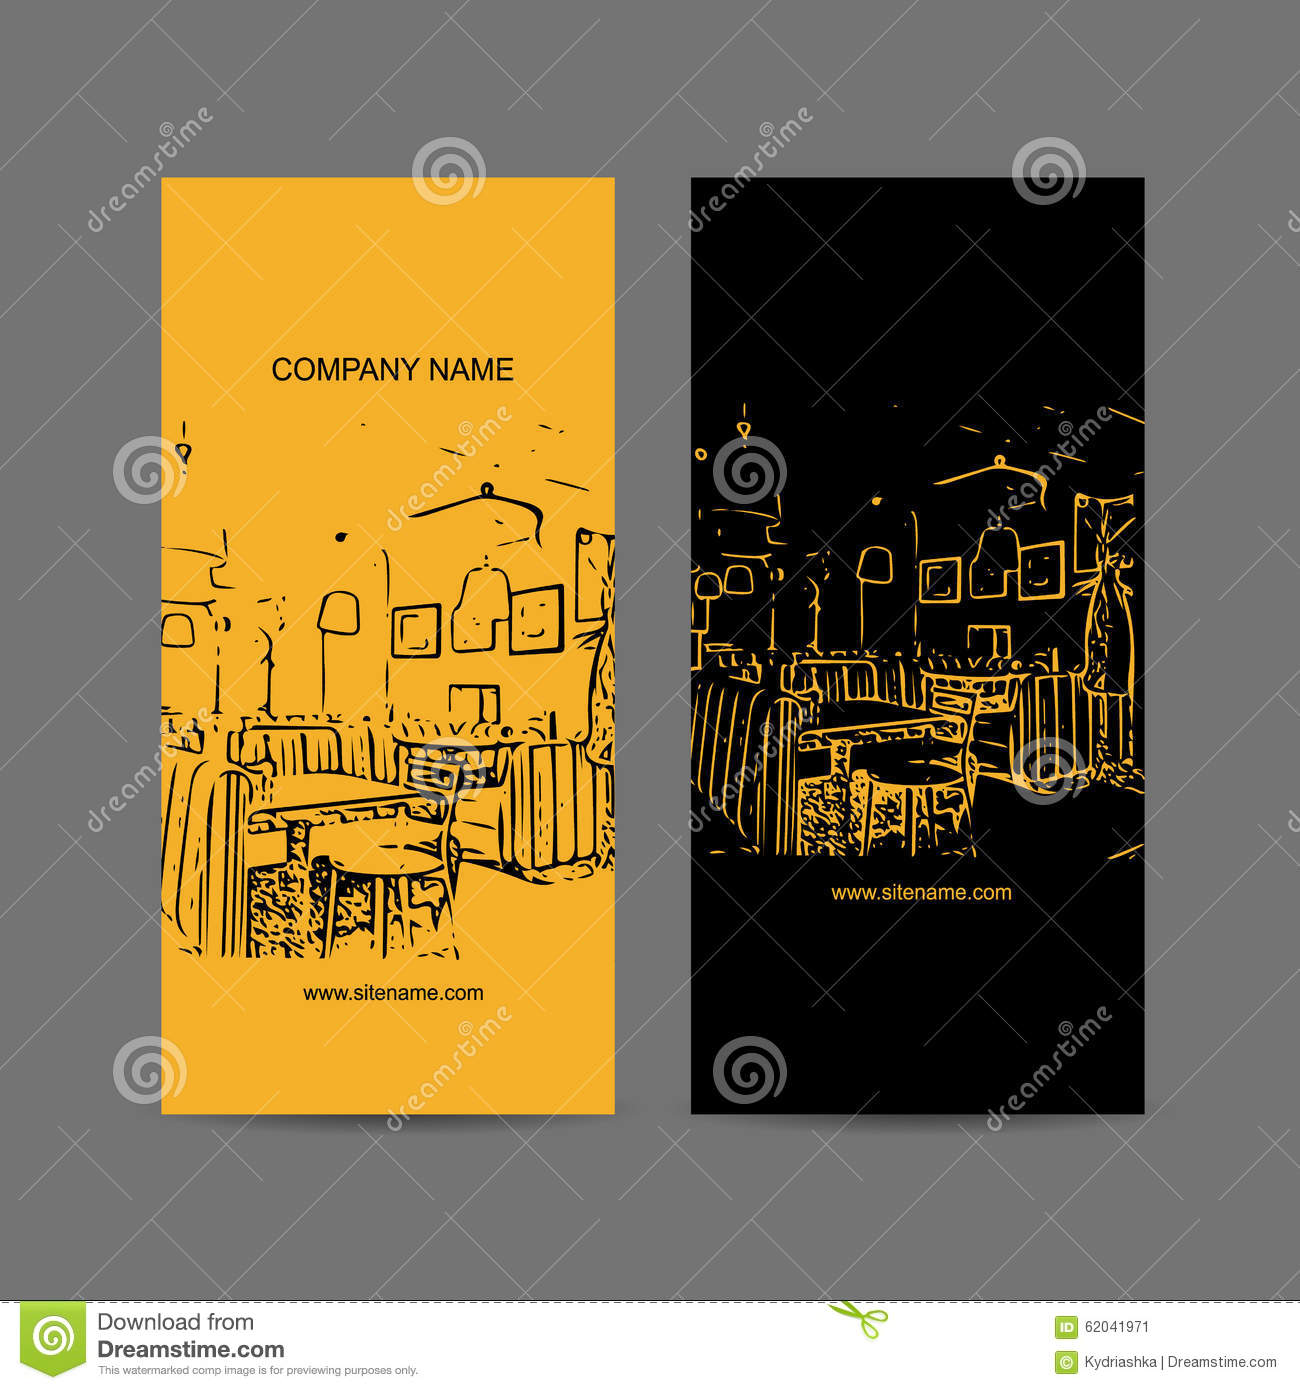 Abstract Cafe Interior Silhouette. Business Card Stock Vector ...